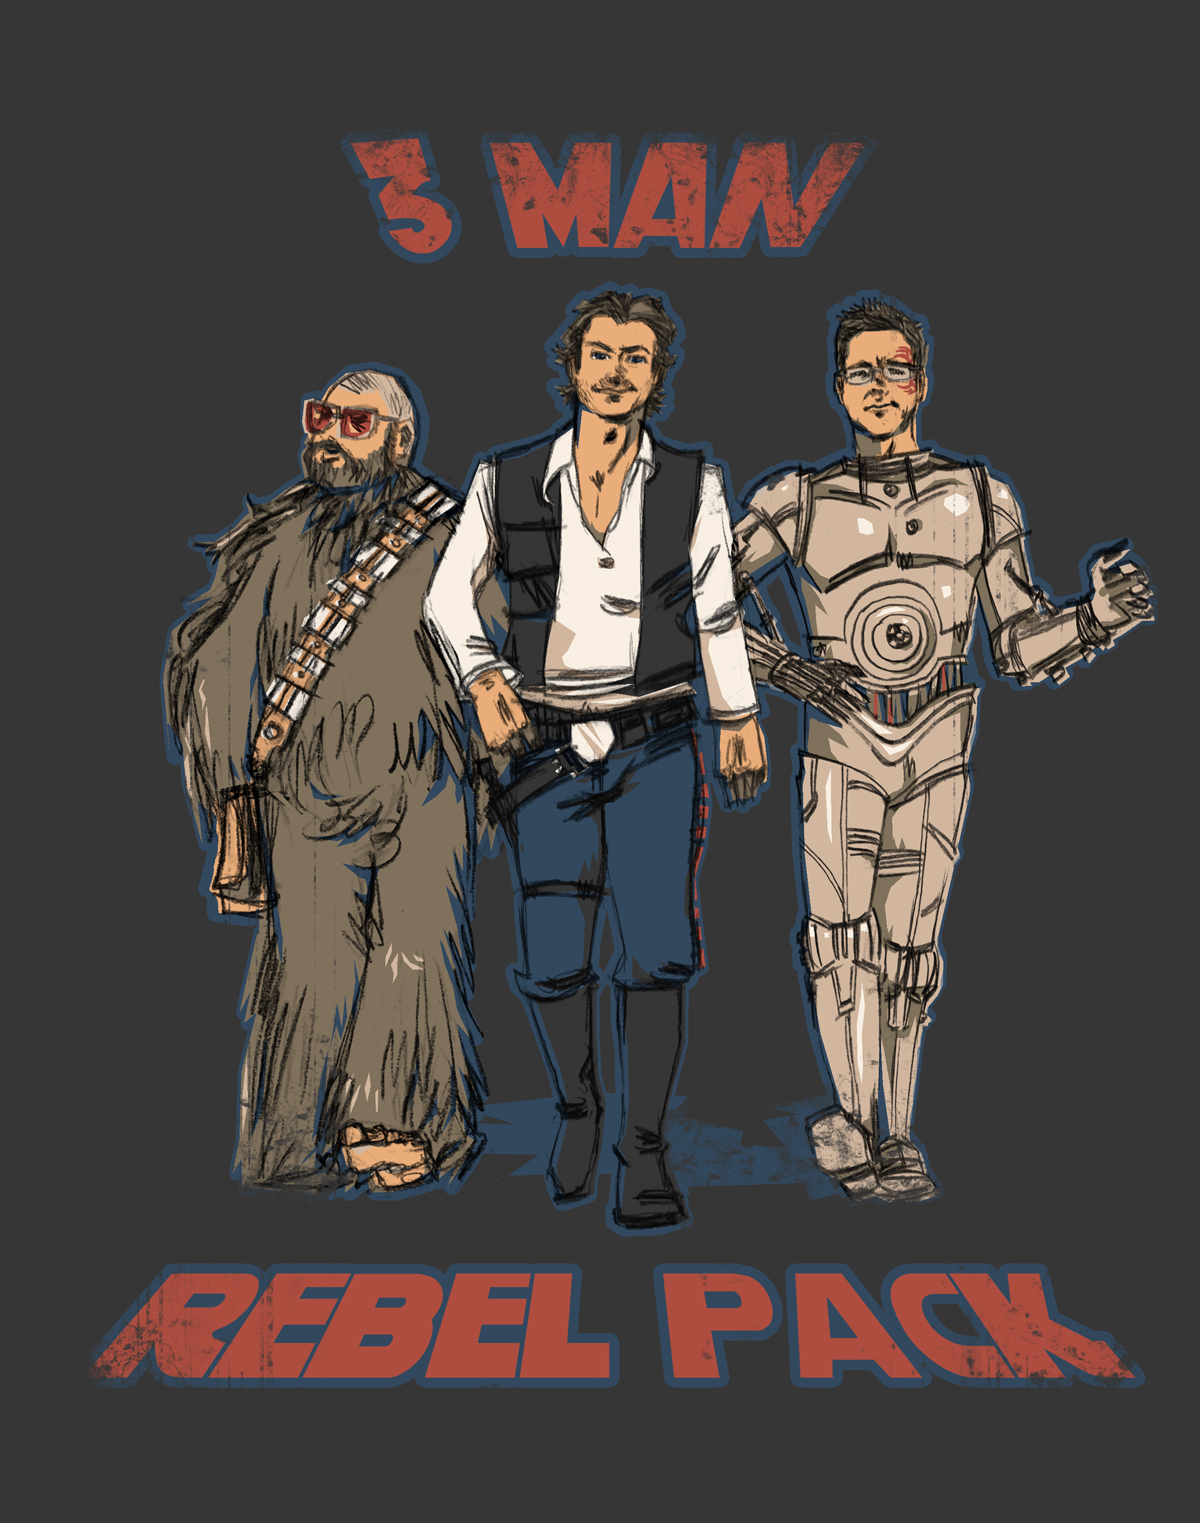 3 Man Rebel Pack